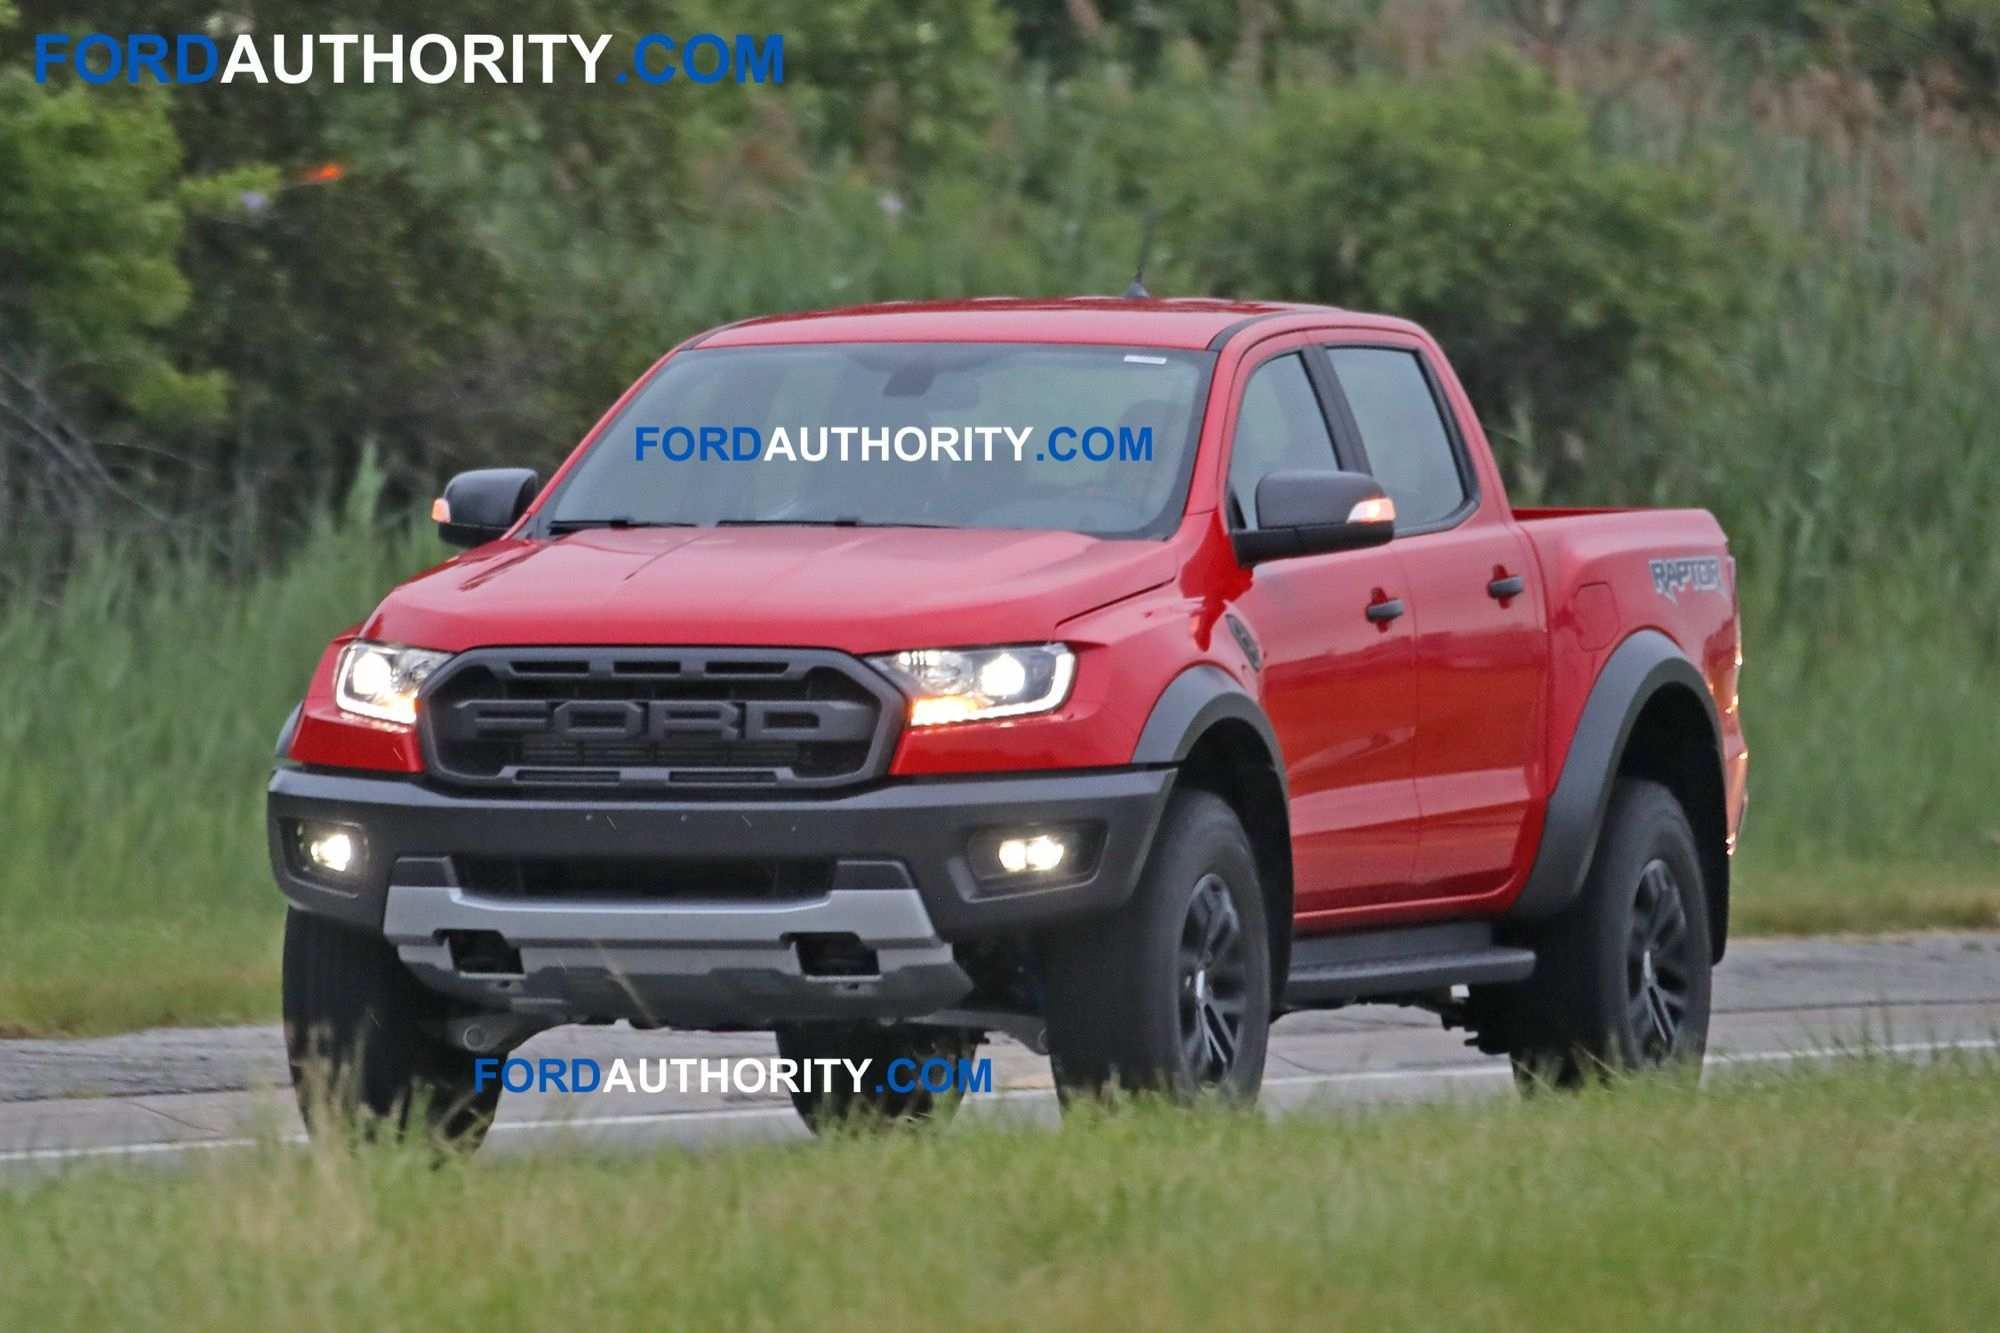 31 New New Release Date Of 2019 Ford Ranger First Drive Release Date for New Release Date Of 2019 Ford Ranger First Drive